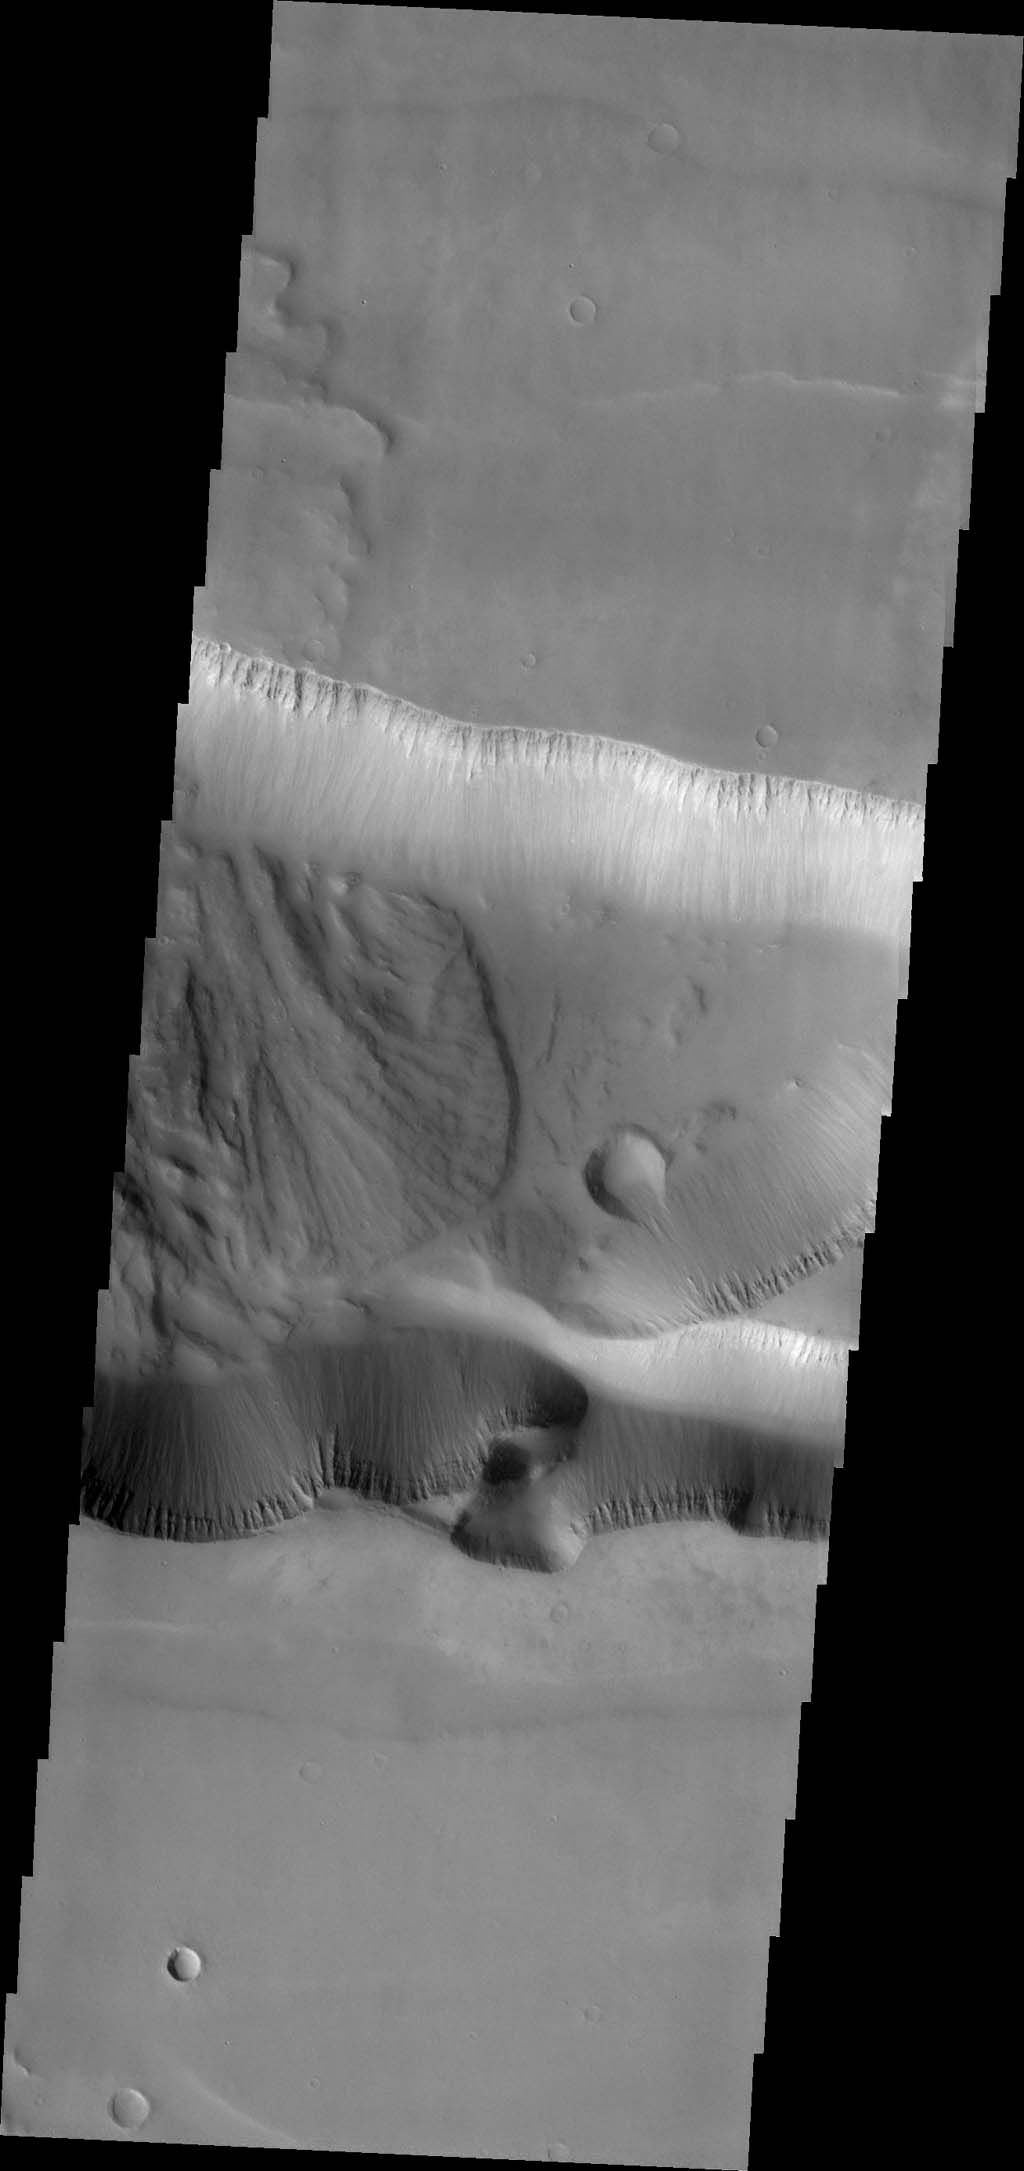 The landslide deposit in this image captured by NASA's Mars Odyssey is located in shallow extension of Tithonium Chasma, in the western part of Valles Marineris.